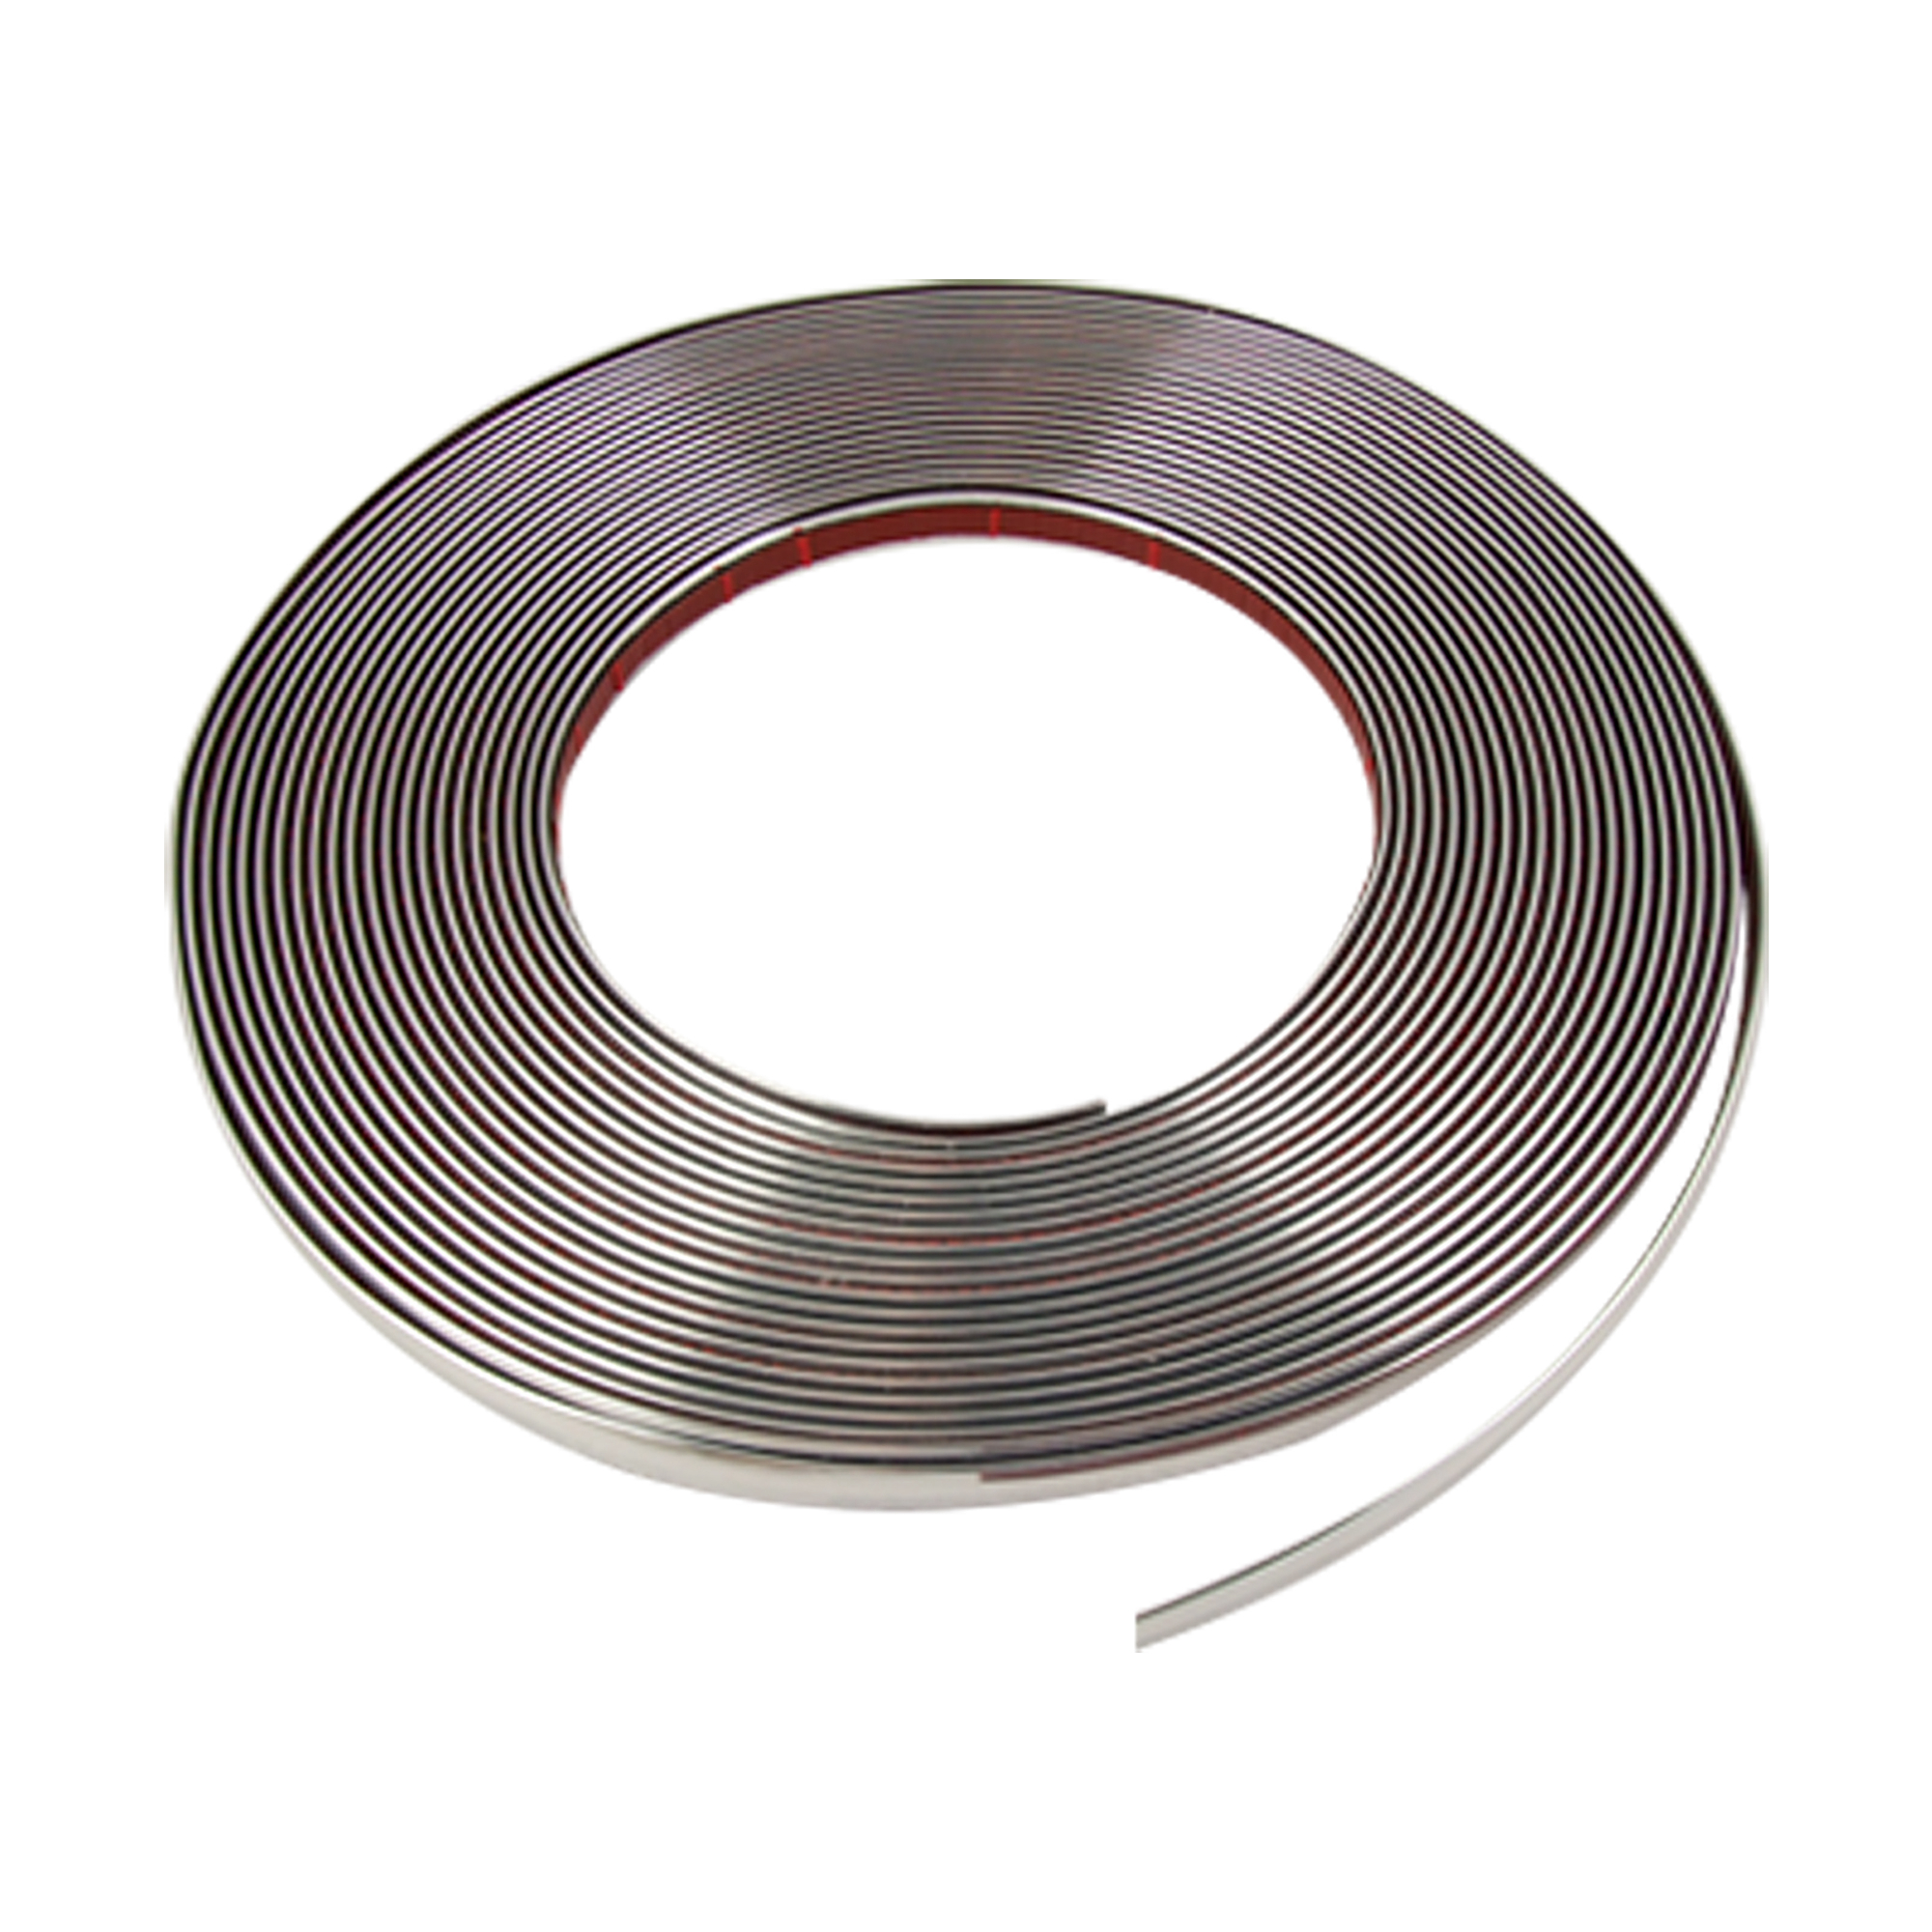 15M x 10mm Flexible Silver Tone Sticky Chrome Moulding Trim Strip for Car Auto